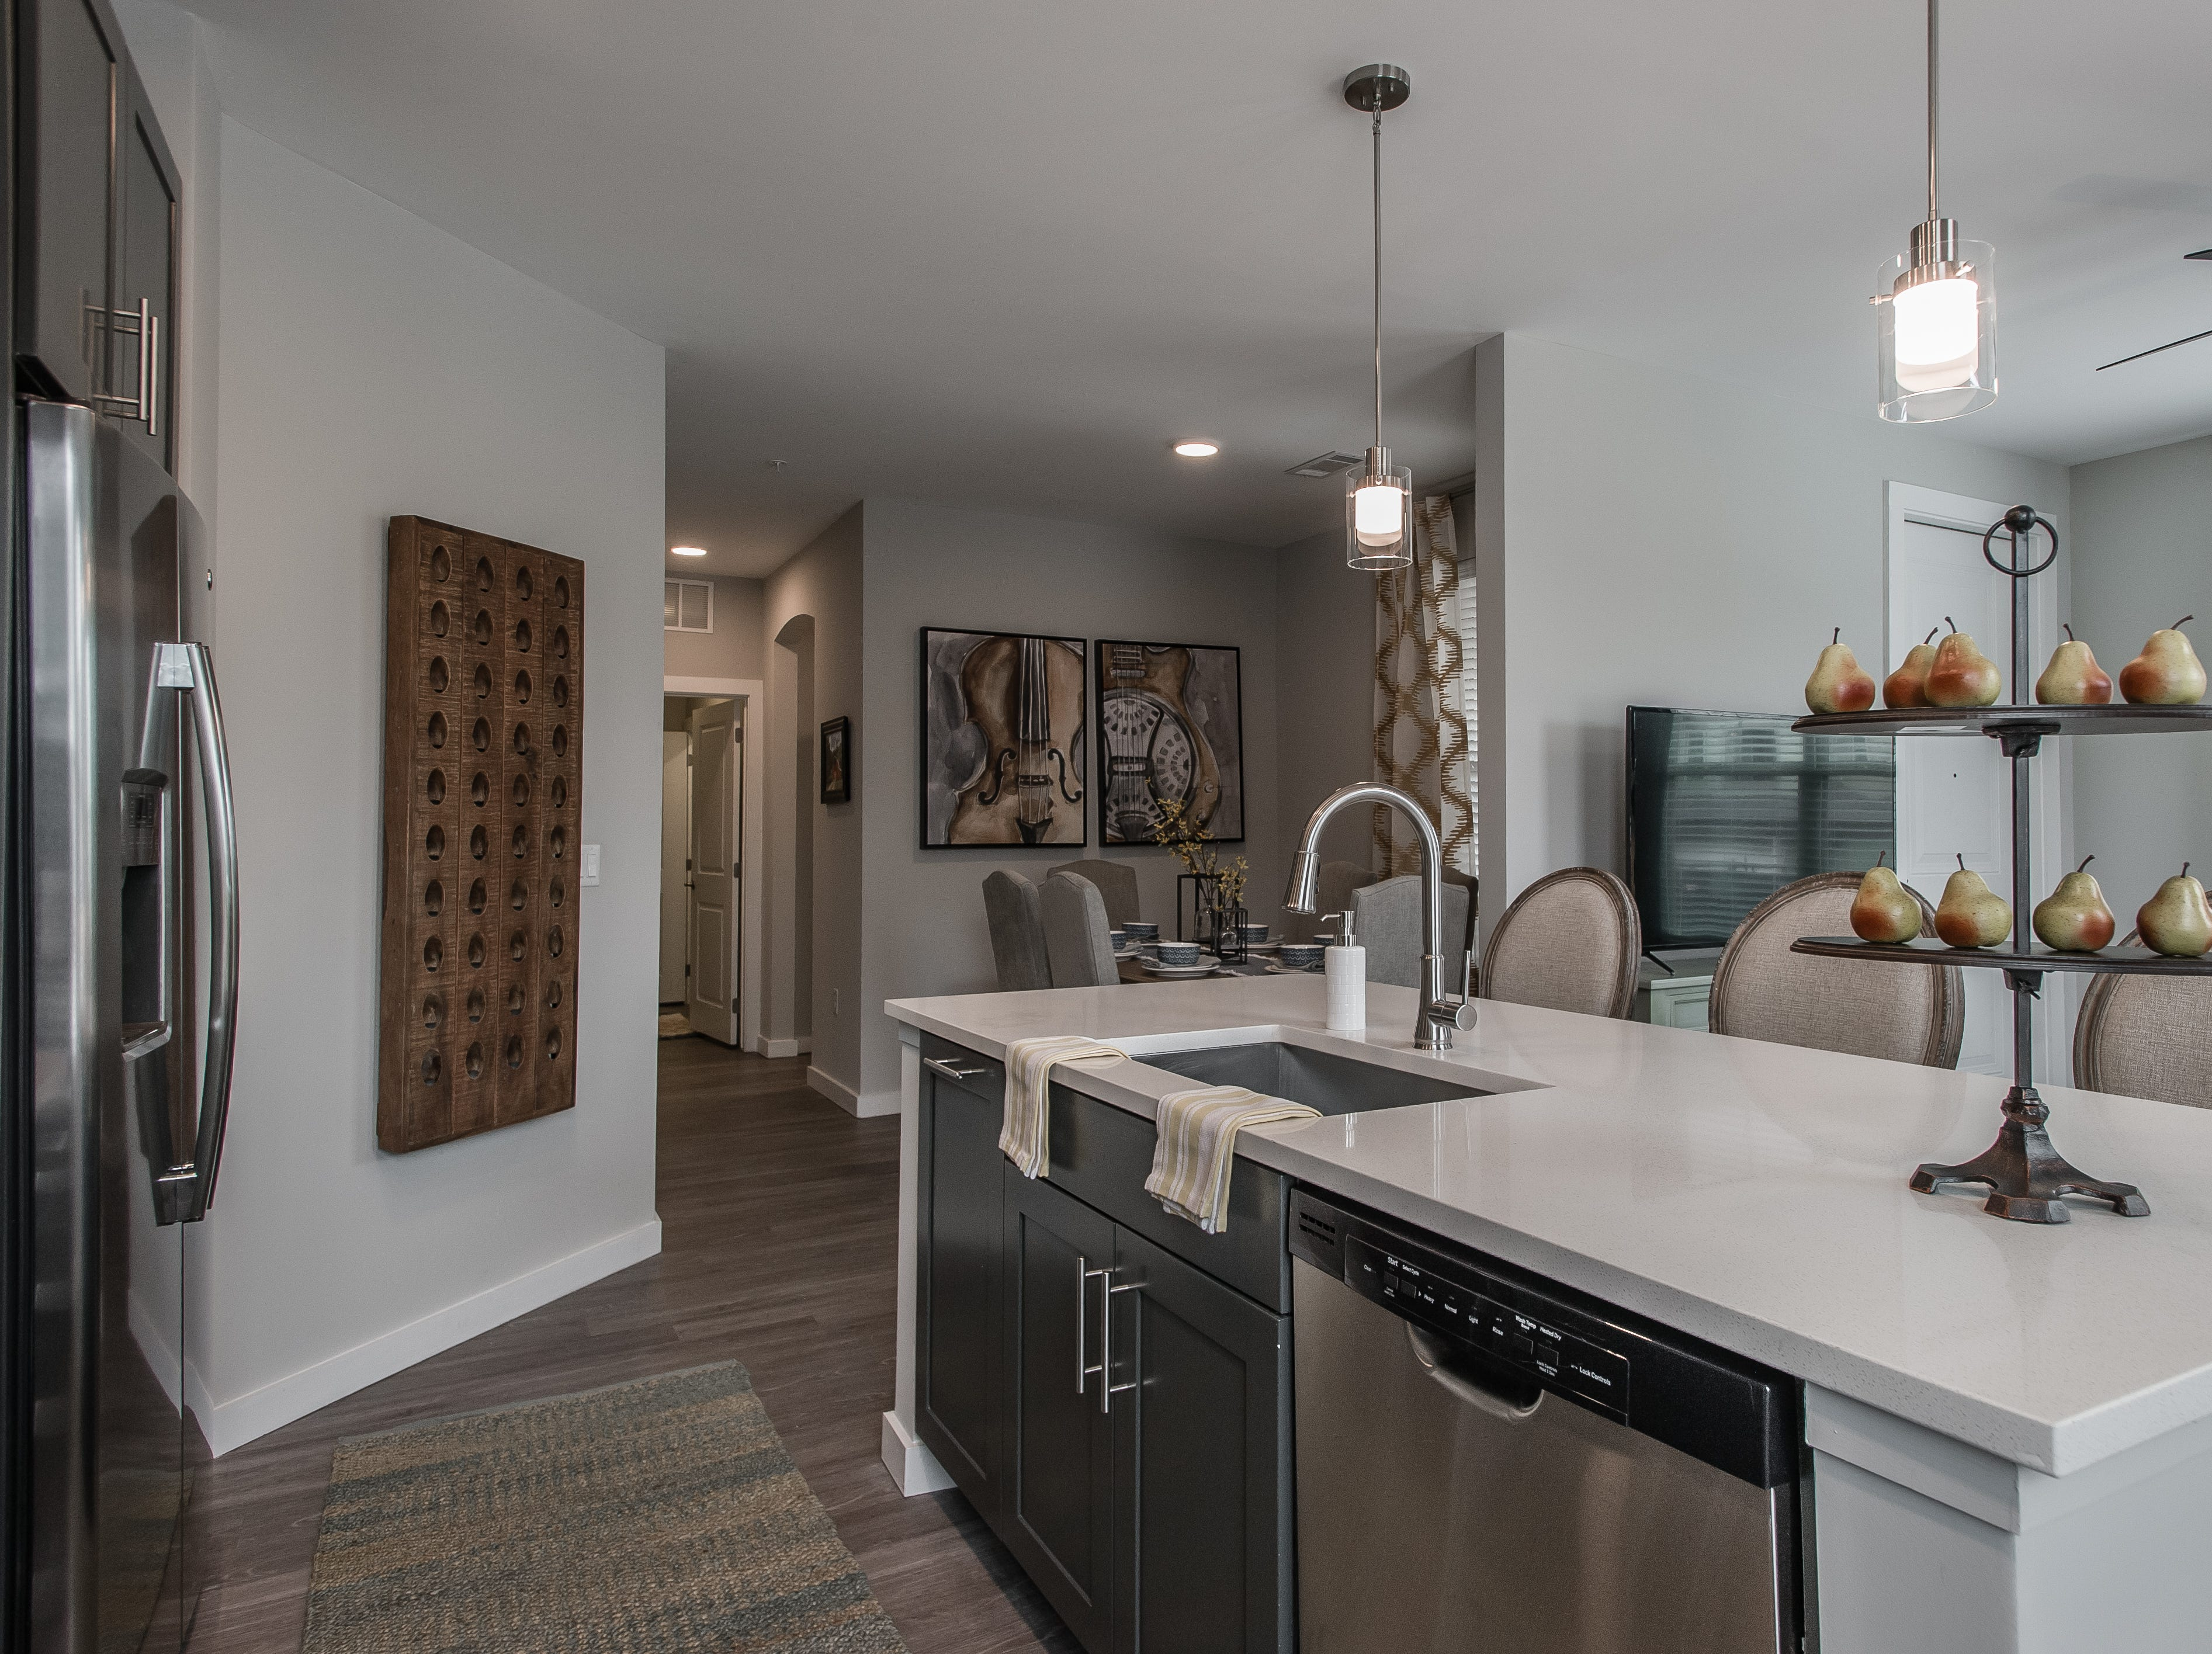 Granite or quartz countertops, open floor plans, hardwood-style flooring and Energy Star stainless appliances come with apartments at Novel Lockwood Glen.